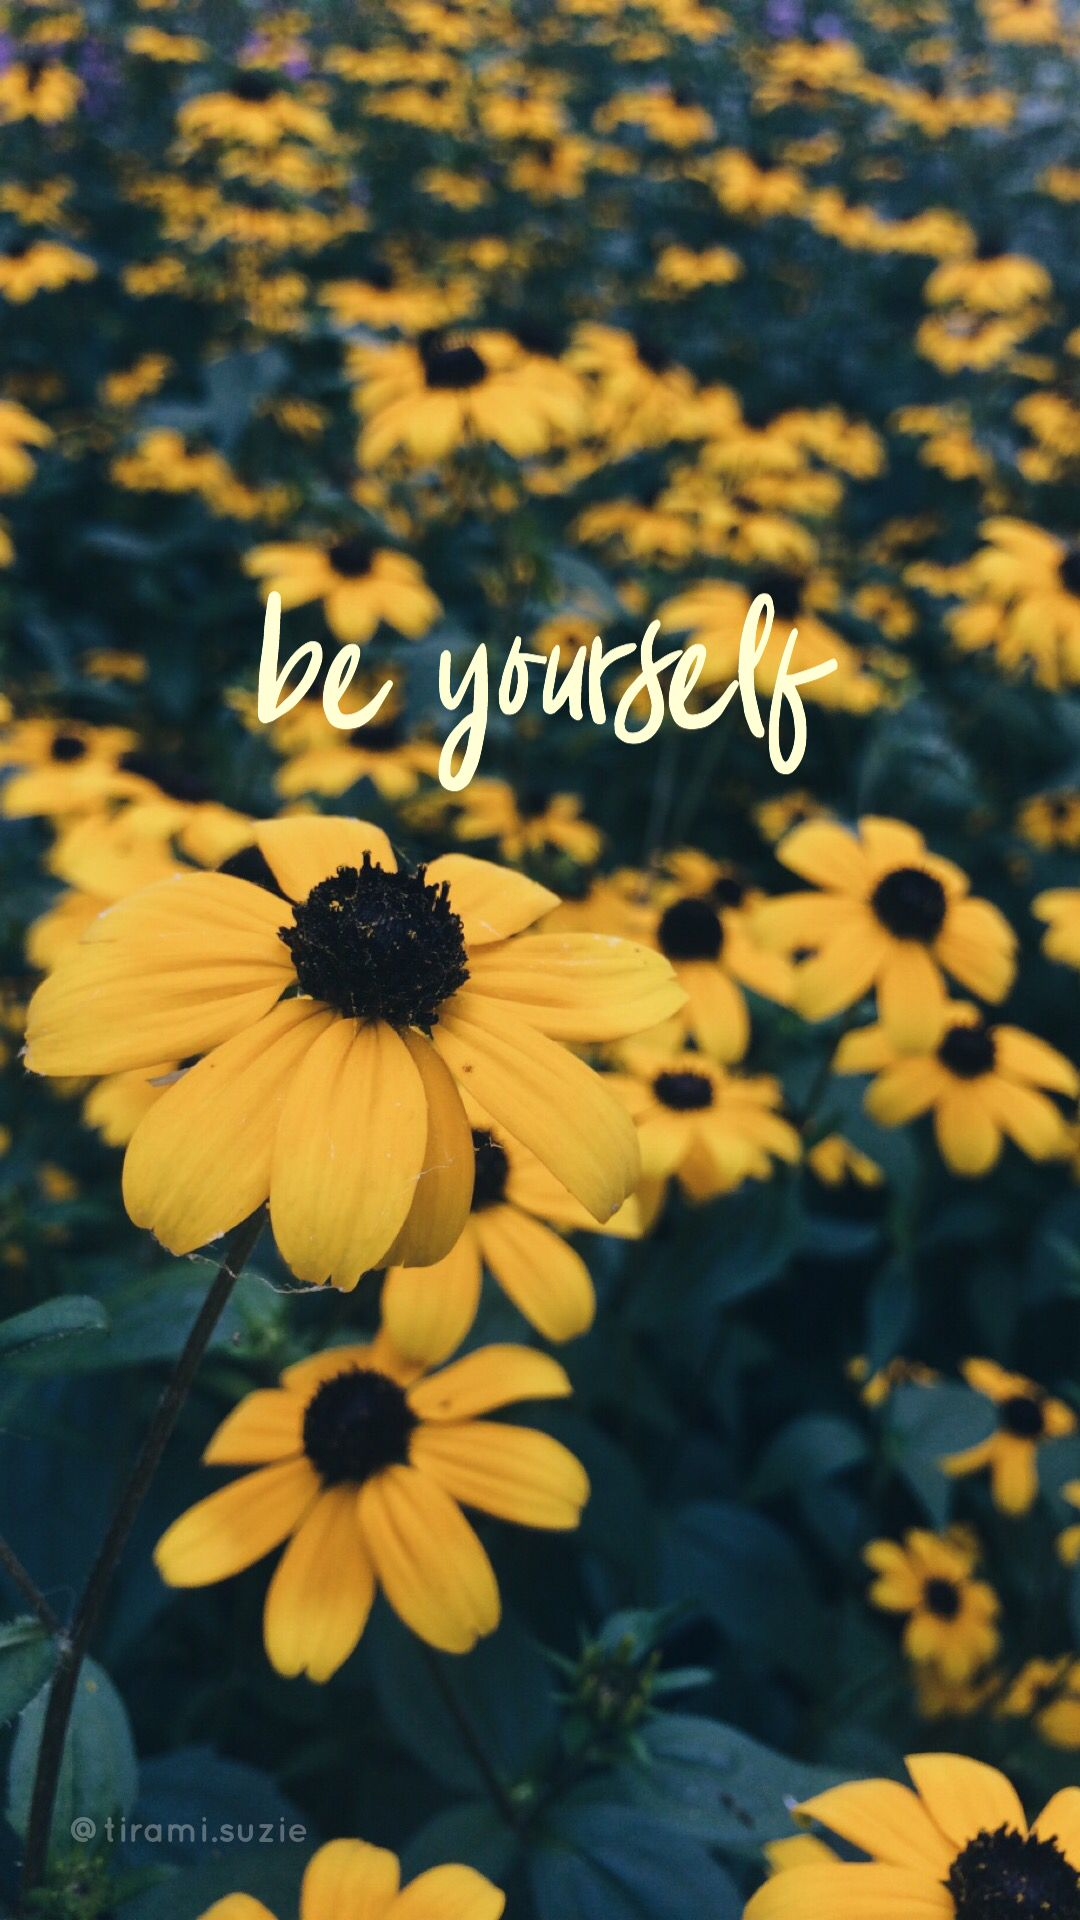 Don T Worry Be Happy Sunflower Quotes Sunflower Iphone Wallpaper Sunflower Pictures